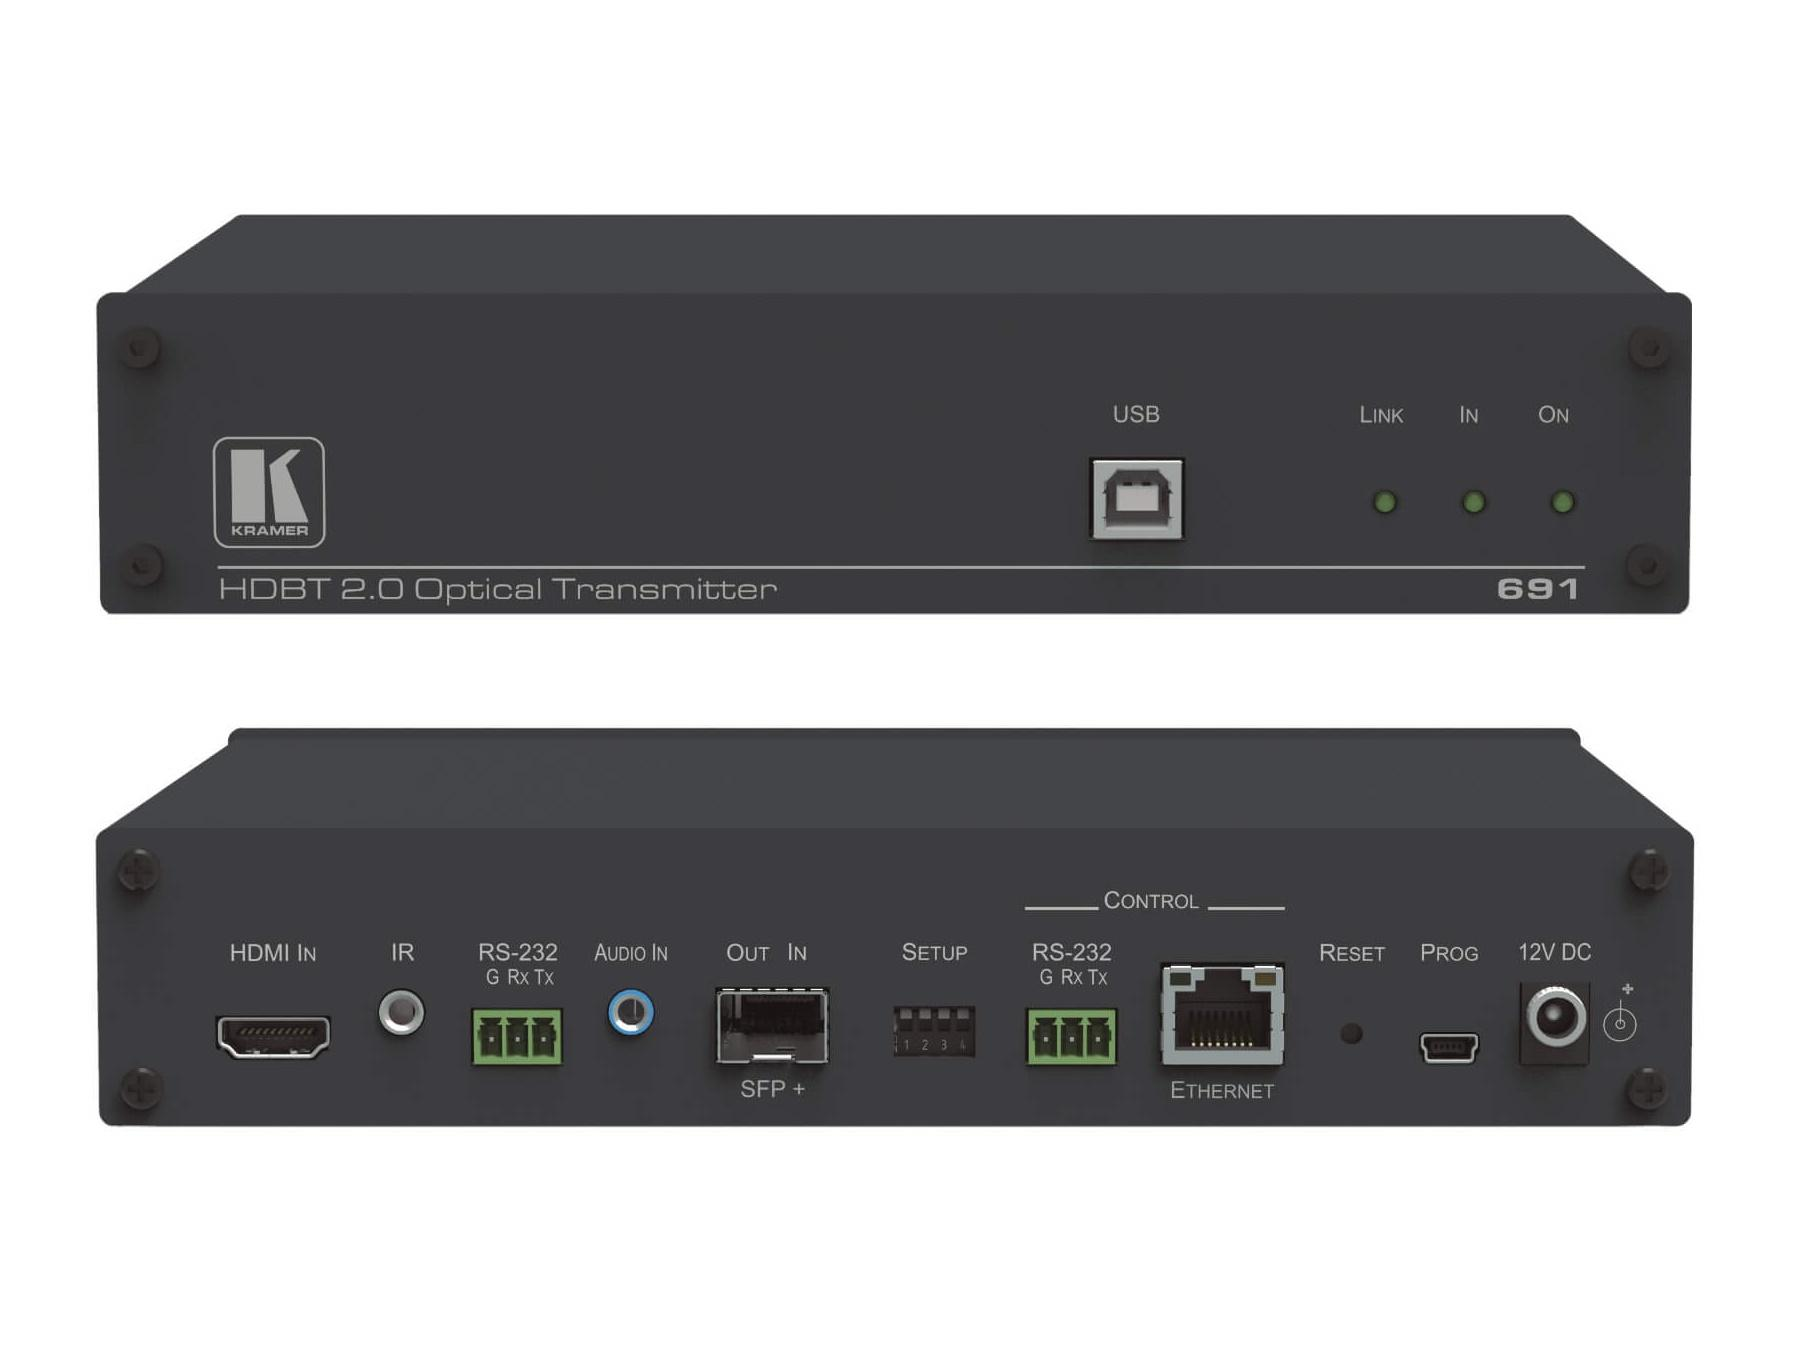 Kramer 691 4K60 4x2x0 HDMI MM/SM Fiber Optic Extender (Transmitter) with USB/Ethernet/RS-232/IR/Stereo Audio